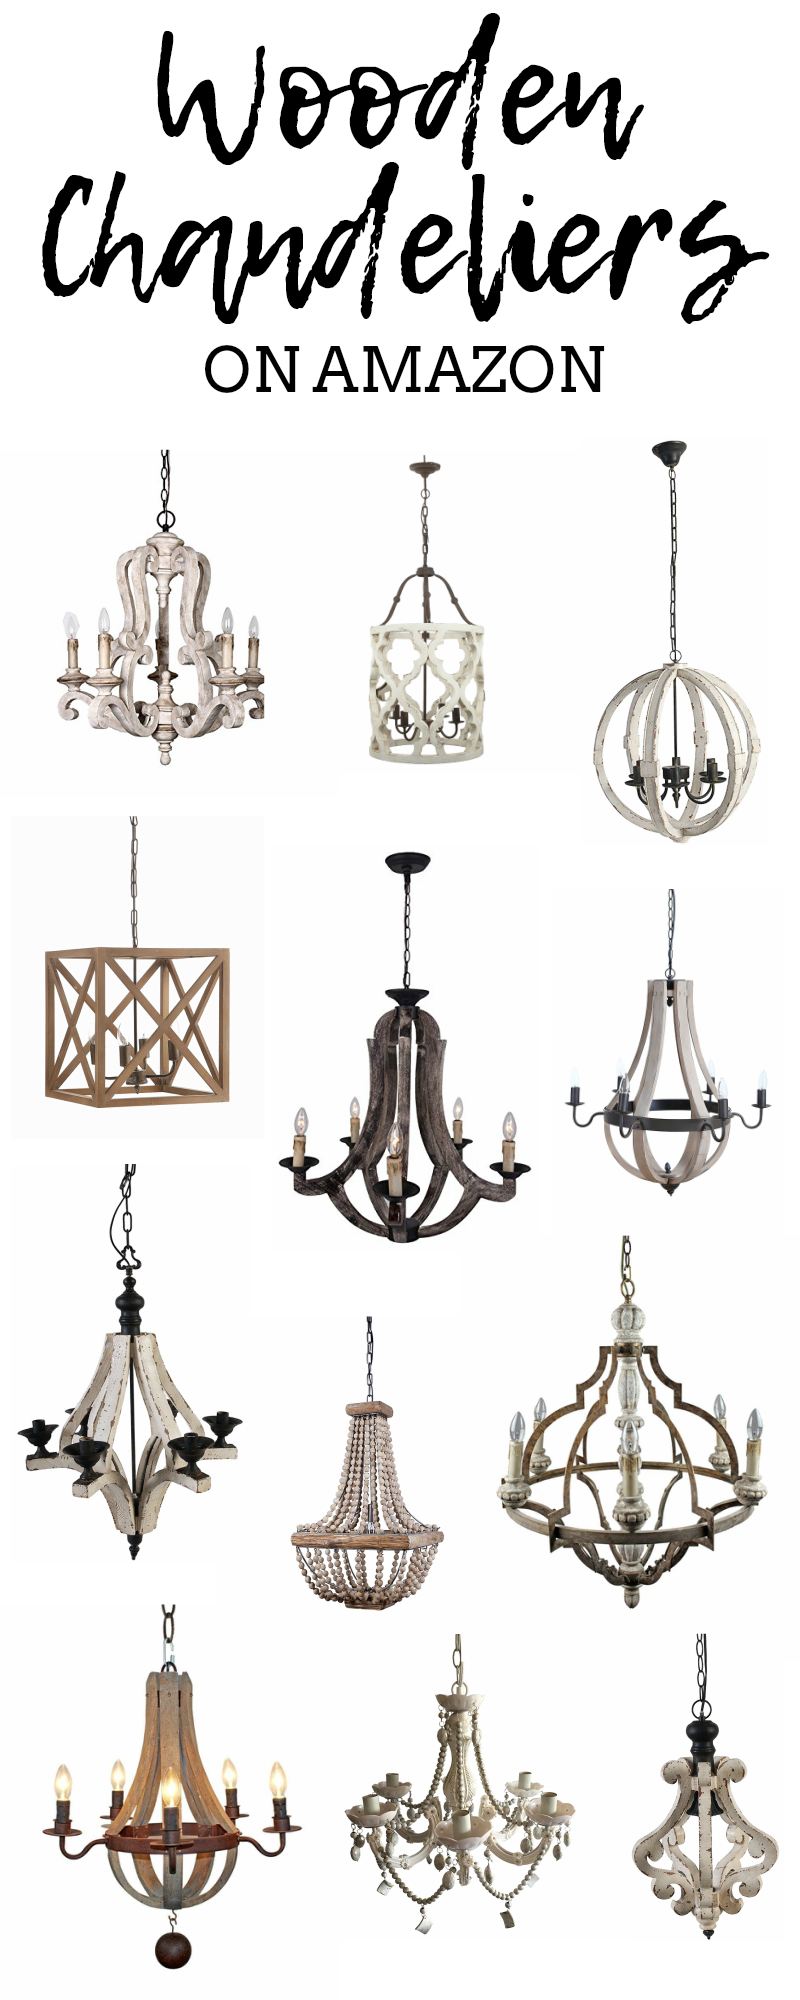 Wooden chandeliers on amazon farmhouse lighting blog fixer wooden chandeliers on amazon farmhouse lighting blog fixer upper decor aloadofball Gallery